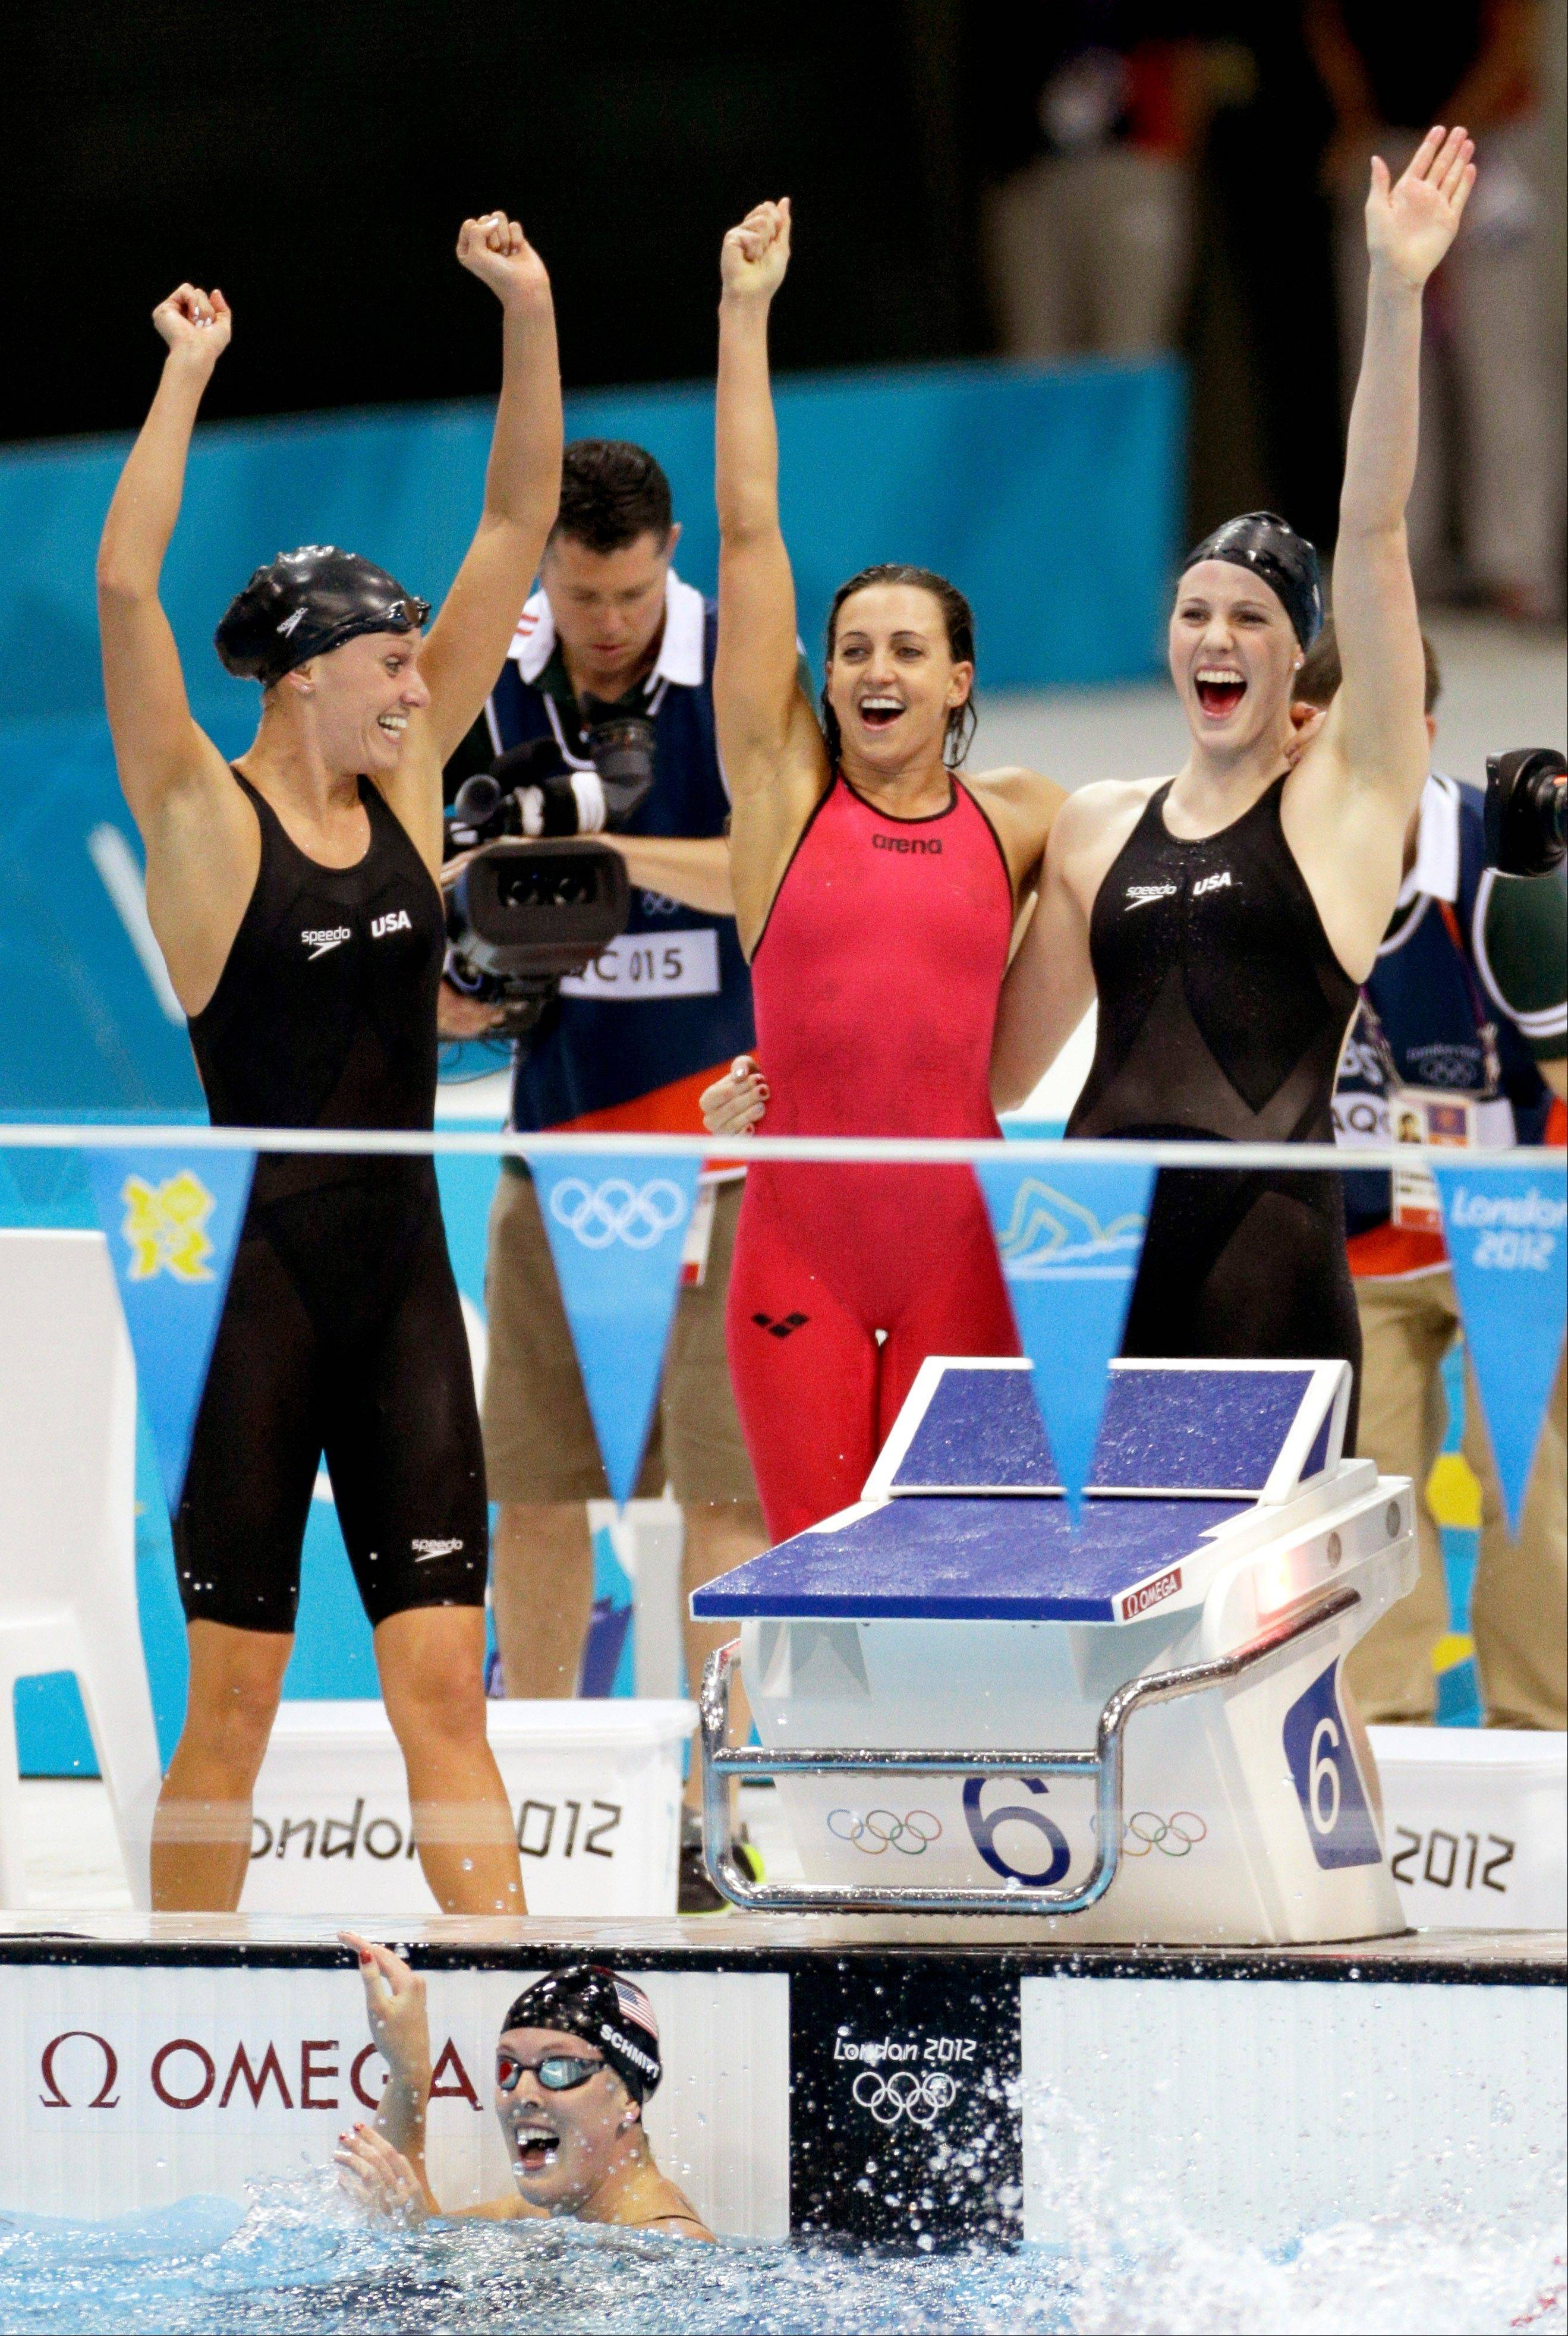 The United States� women�s 4 x 100-meter medley relay team members from left, Dana Vollmer, Rebecca Soni, Missy Franklin and Alison Schmitt, bottom, celebrate Saturday after winning the gold medal at the Aquatics Centre in the Olympic Park.